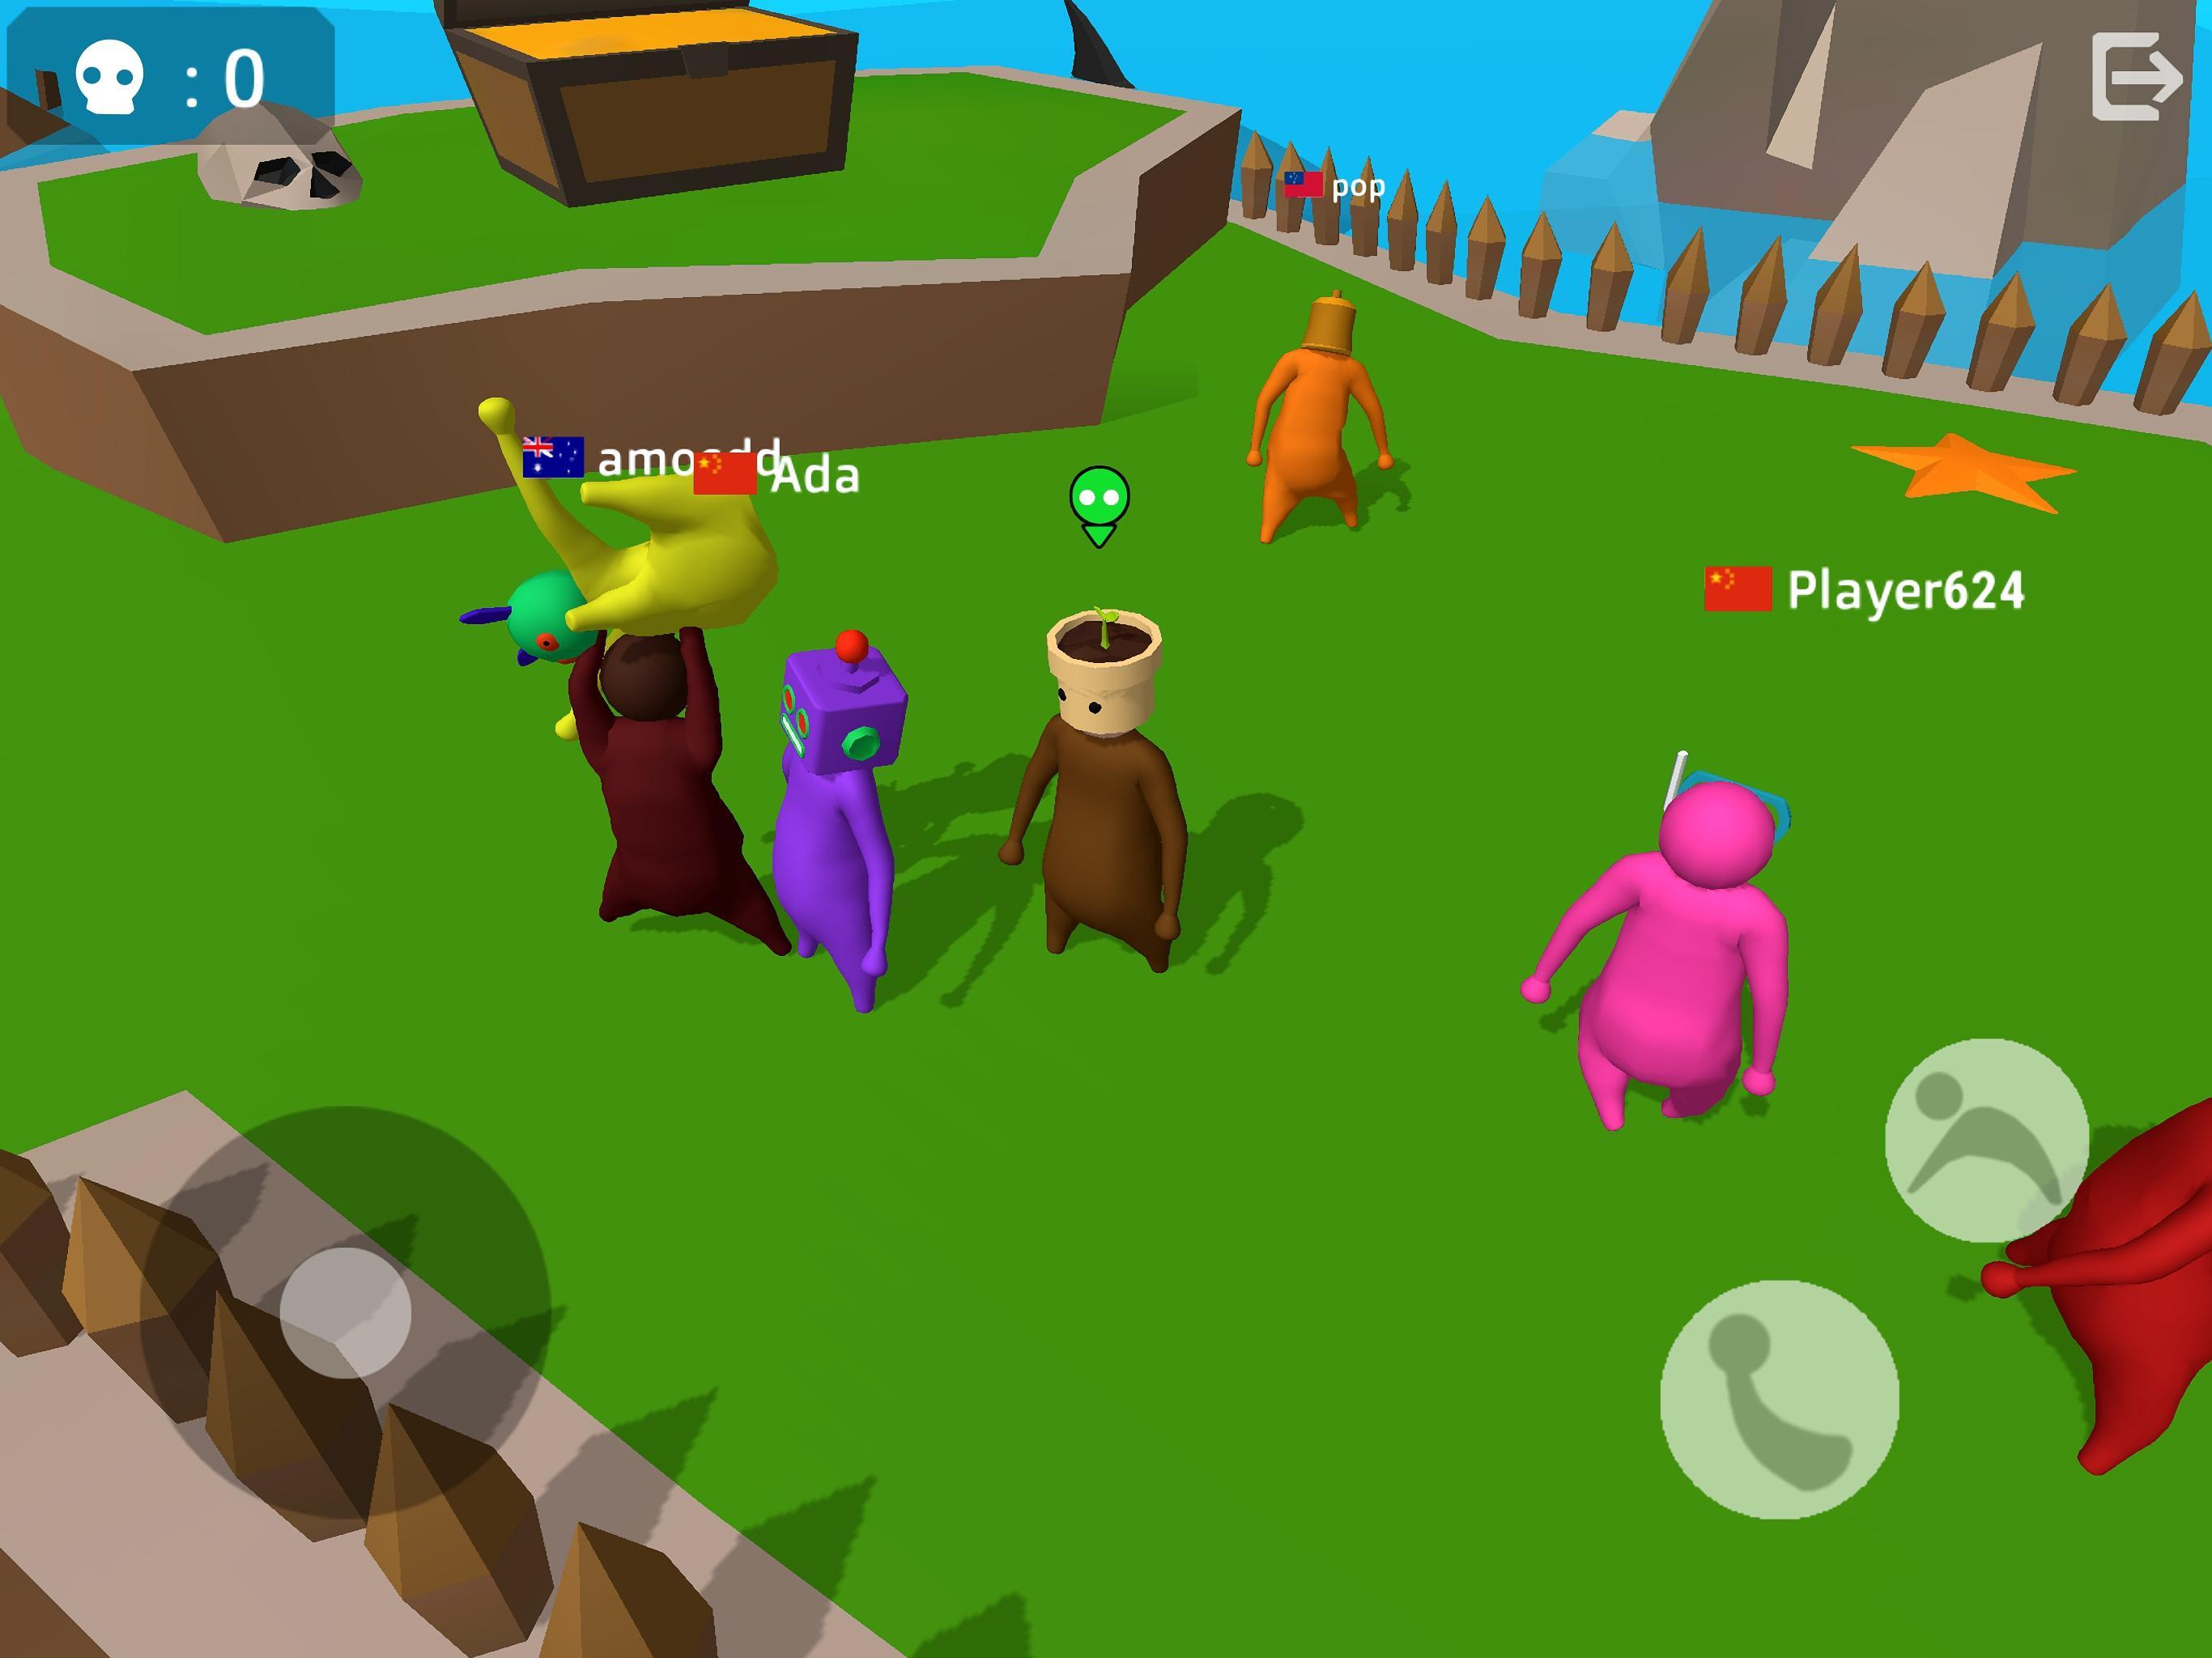 Noodleman.io - Fight Party Games 3.3 Screenshot 20